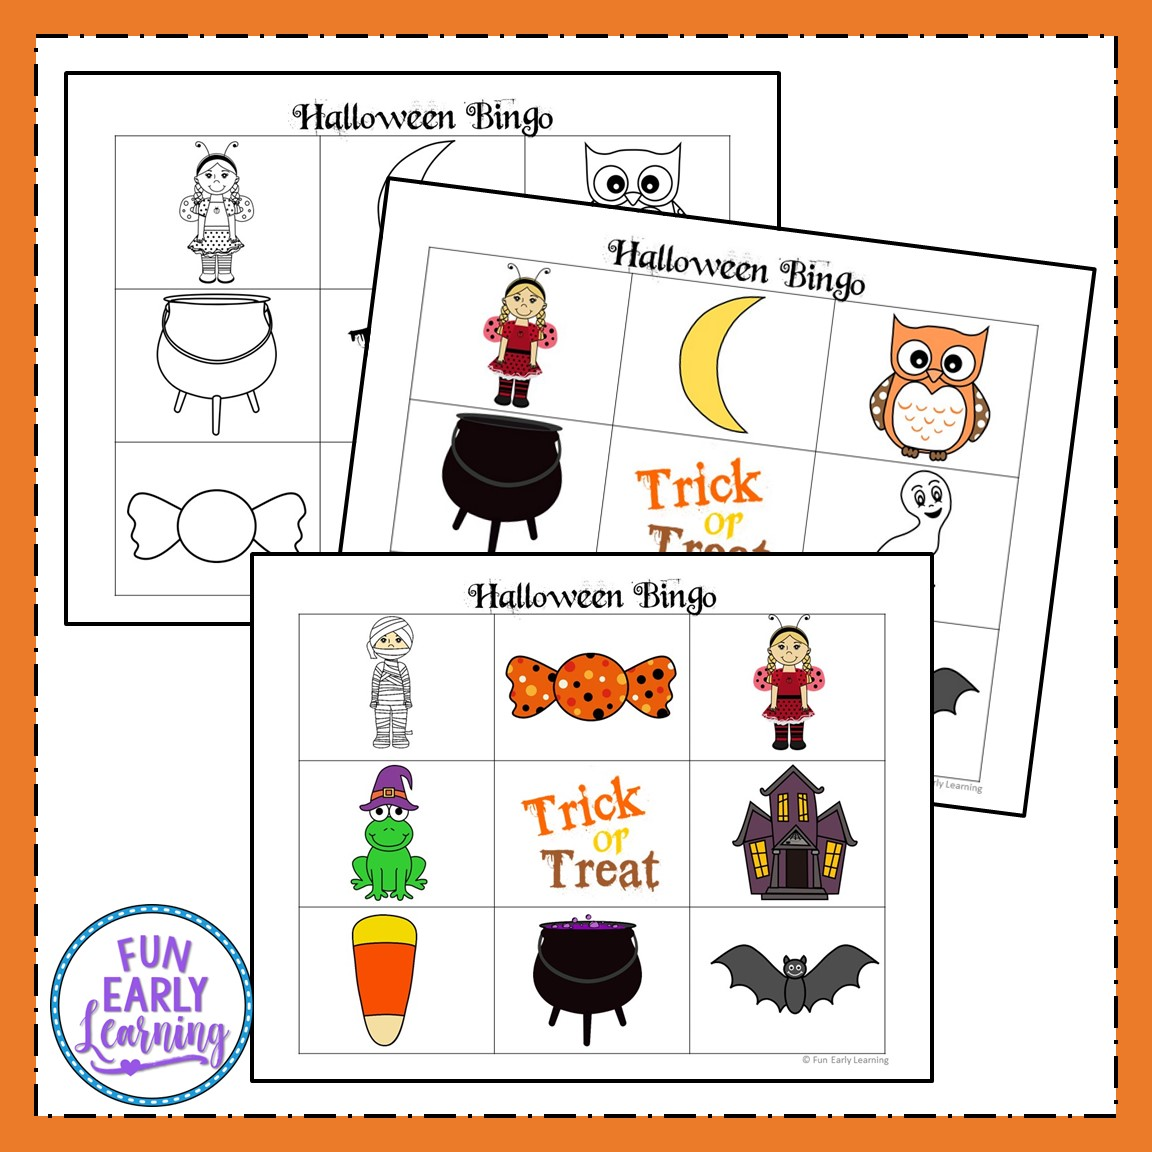 photo regarding Free Halloween Bingo Printable known as Halloween Bingo No cost Printable for Preschool and Kindergarten